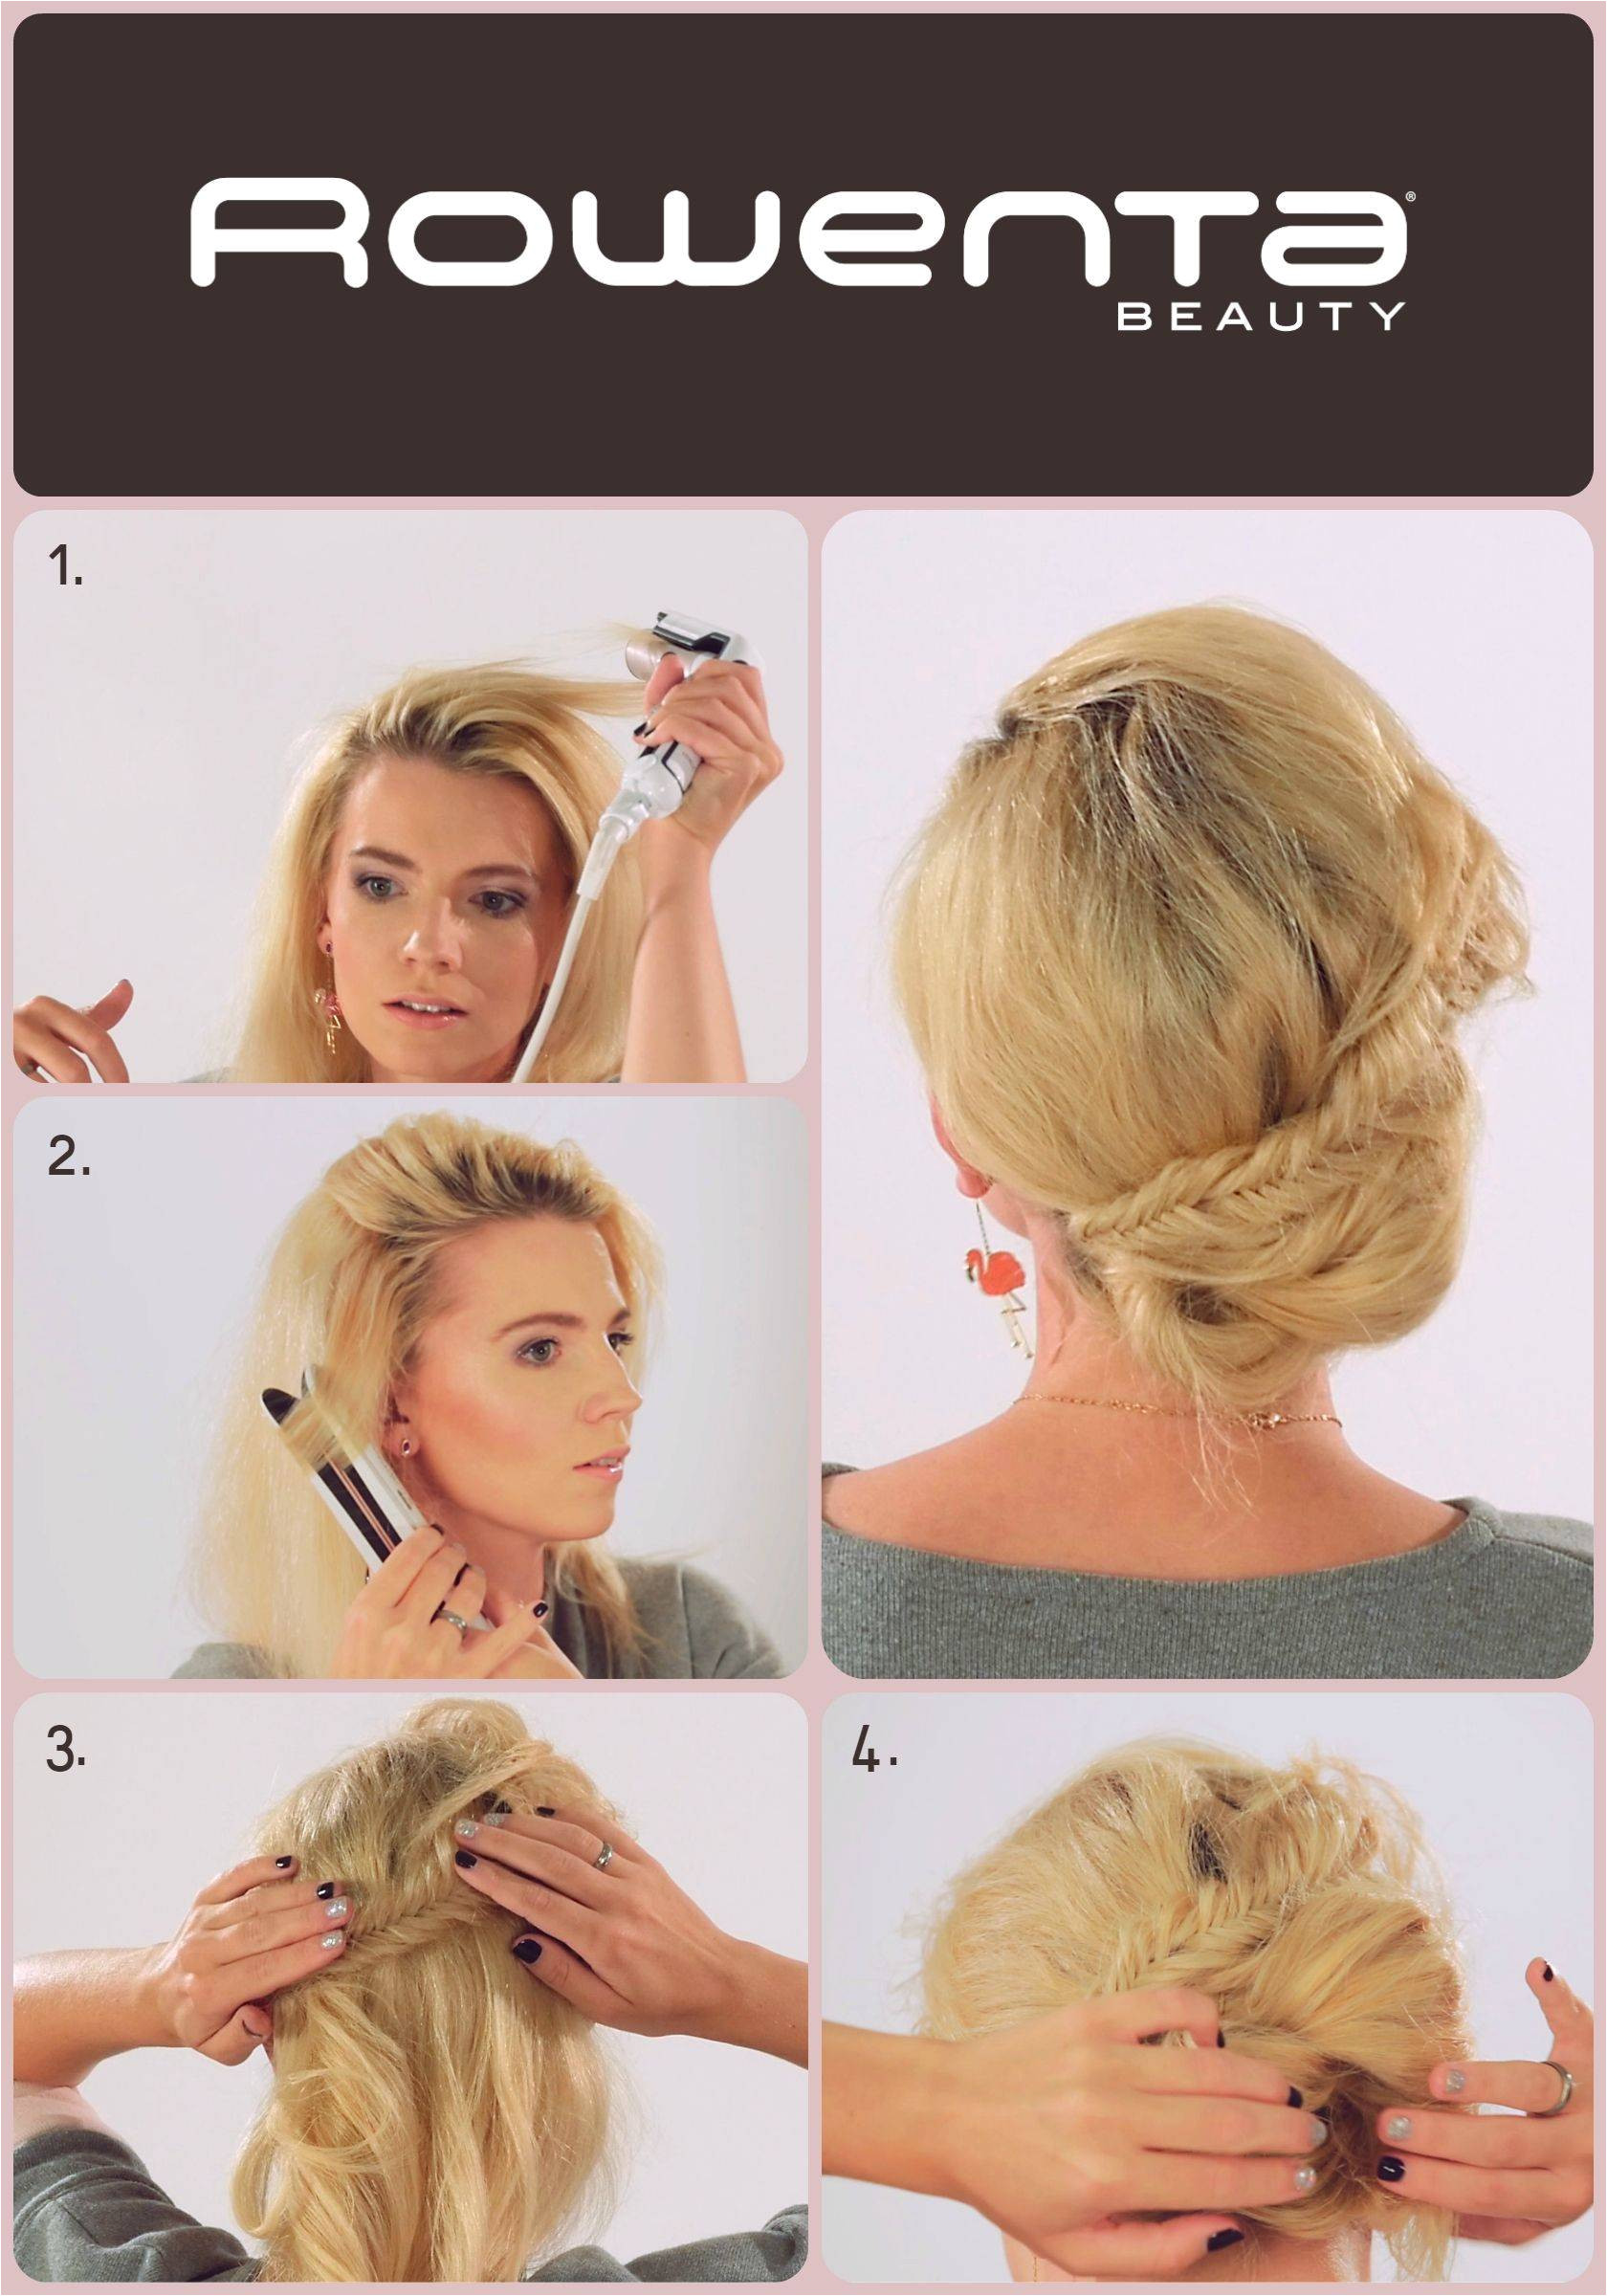 Long Hairstyles and Color Luxury Style My Hair Luxury 7a Hair Color Awesome New Hair Cut